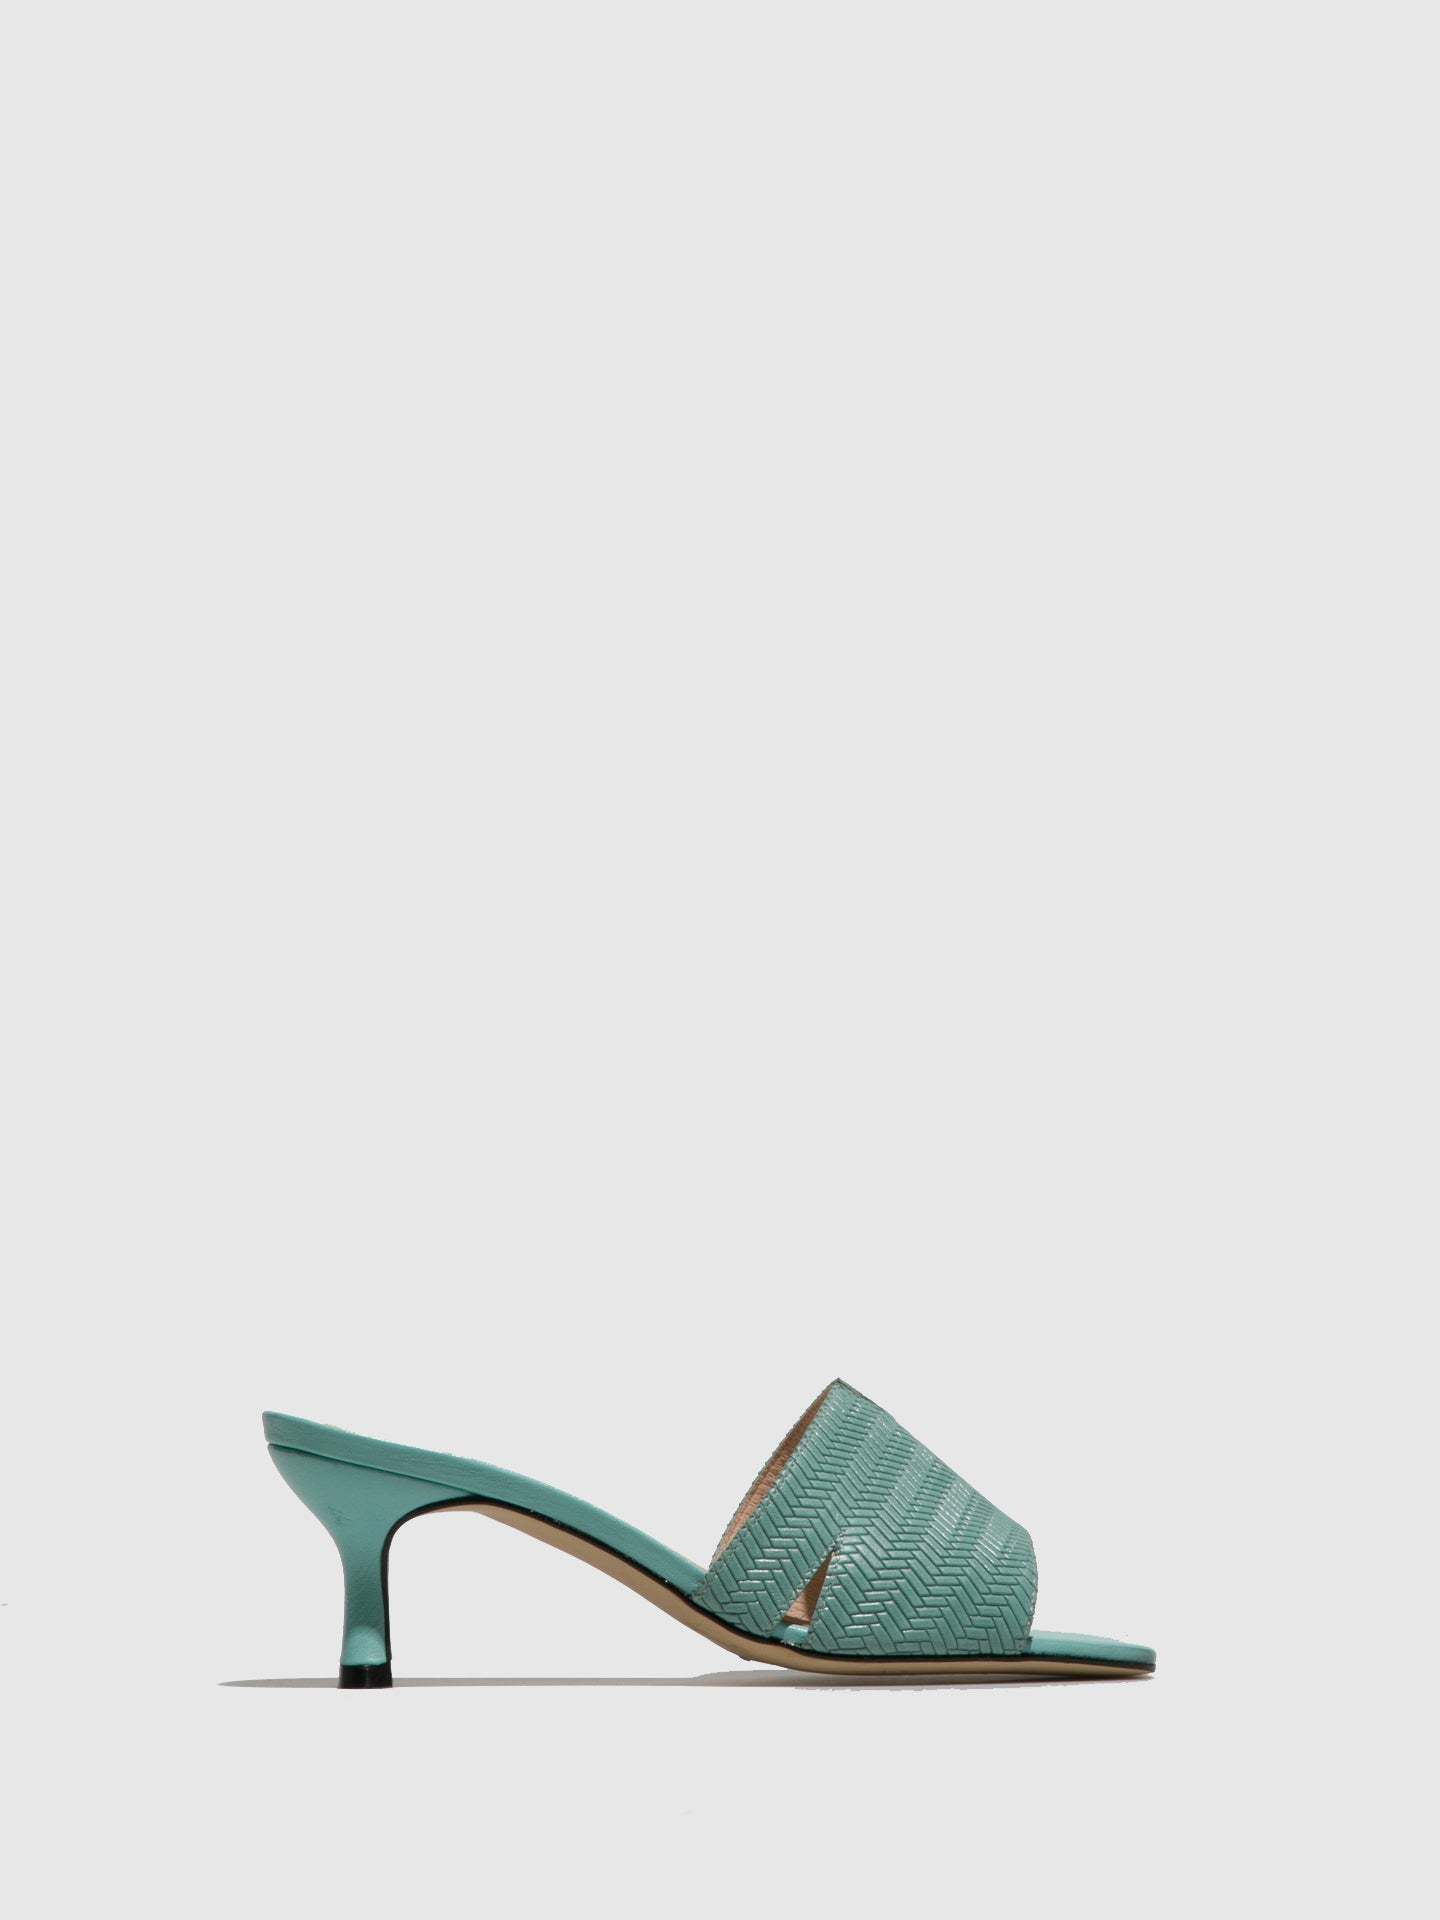 Sofia Costa Green Kitten Heel Mules